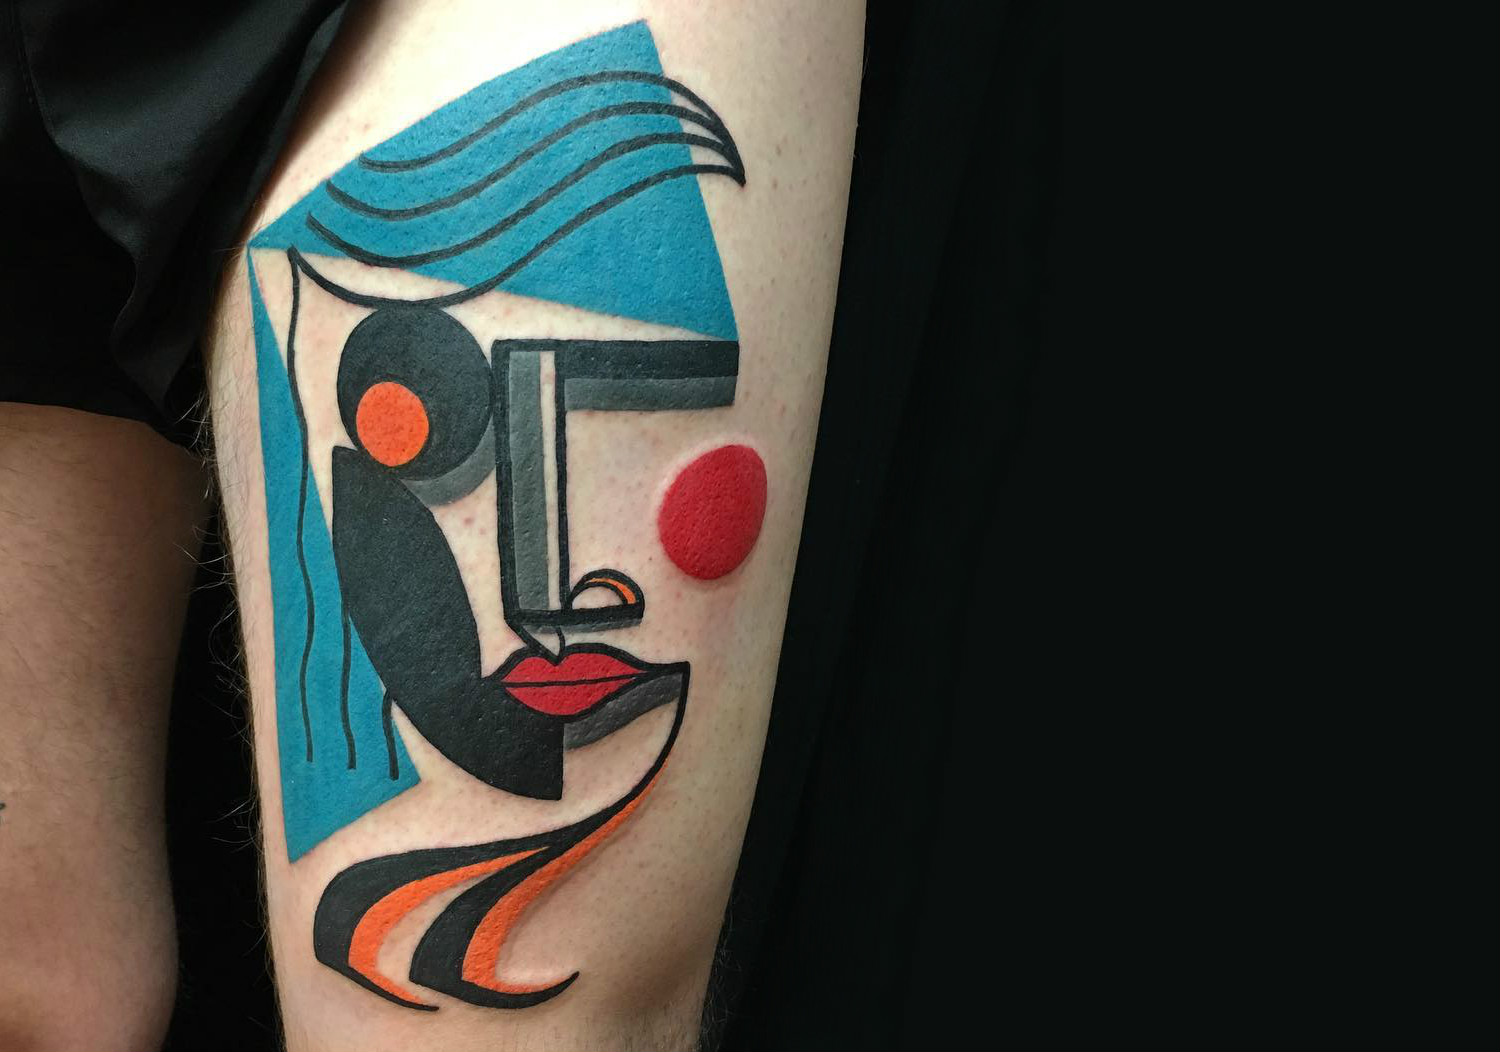 Modern art tattoo portrait by Mike Boyd